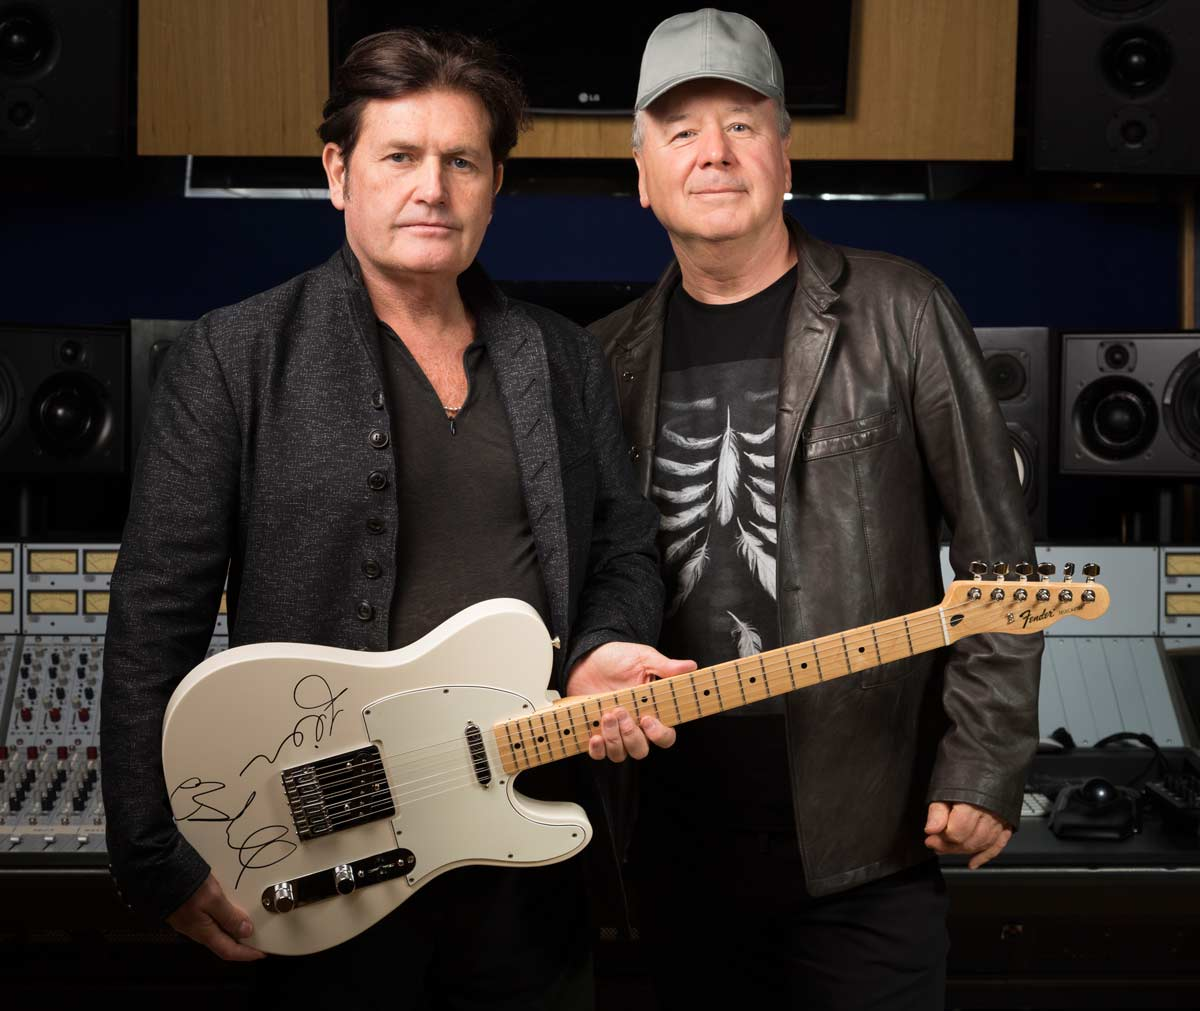 Win Guitar Signed By Jim & Charlie - SIMPLEMINDS COM